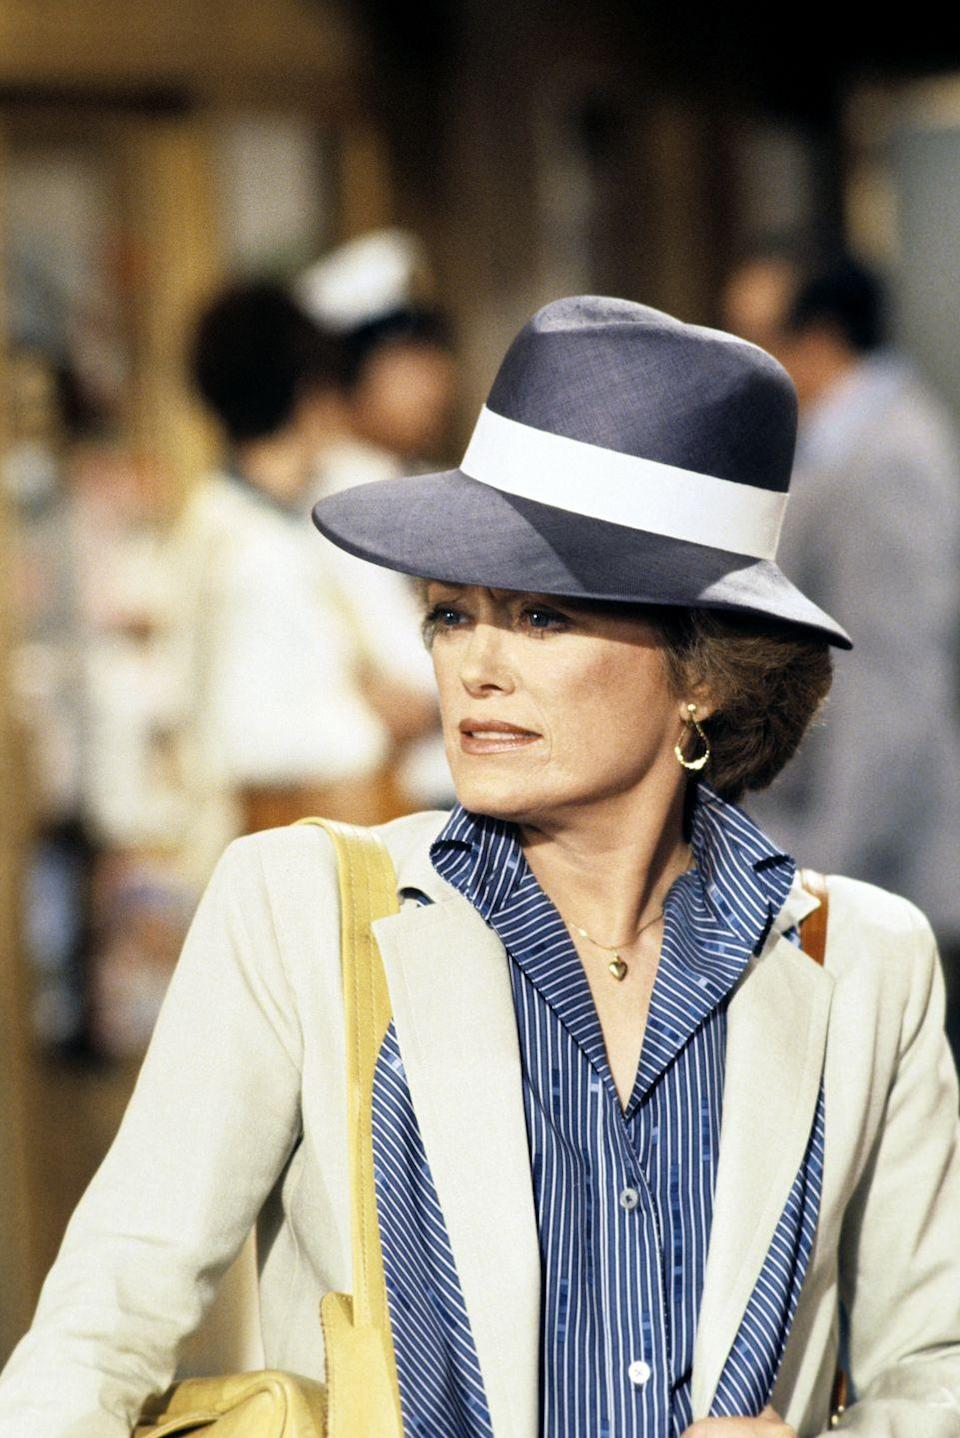 <p>Anyone who was anyone took a trip on <em>The Love Boat</em>, and McClanahan took multiple cruises. Here she's playing April on an episode from season 2.</p>